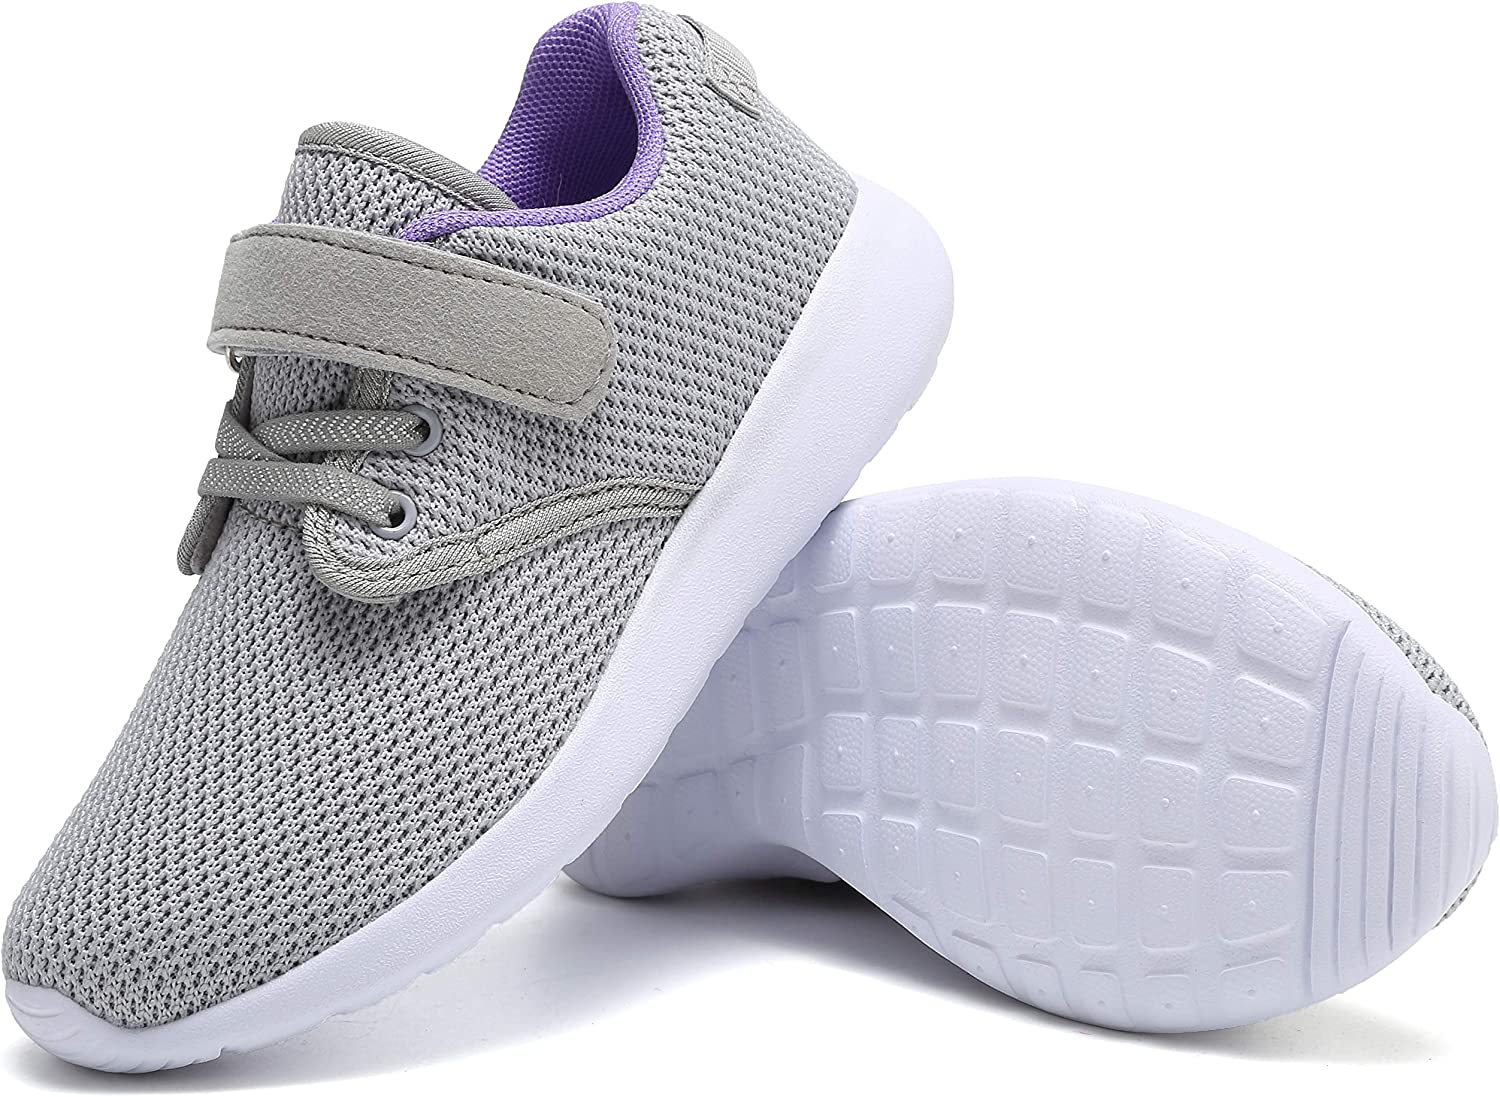 MONTAAS Kids Running Shoes Lightweight Boys Sneakers Girls Breathable Athleti.